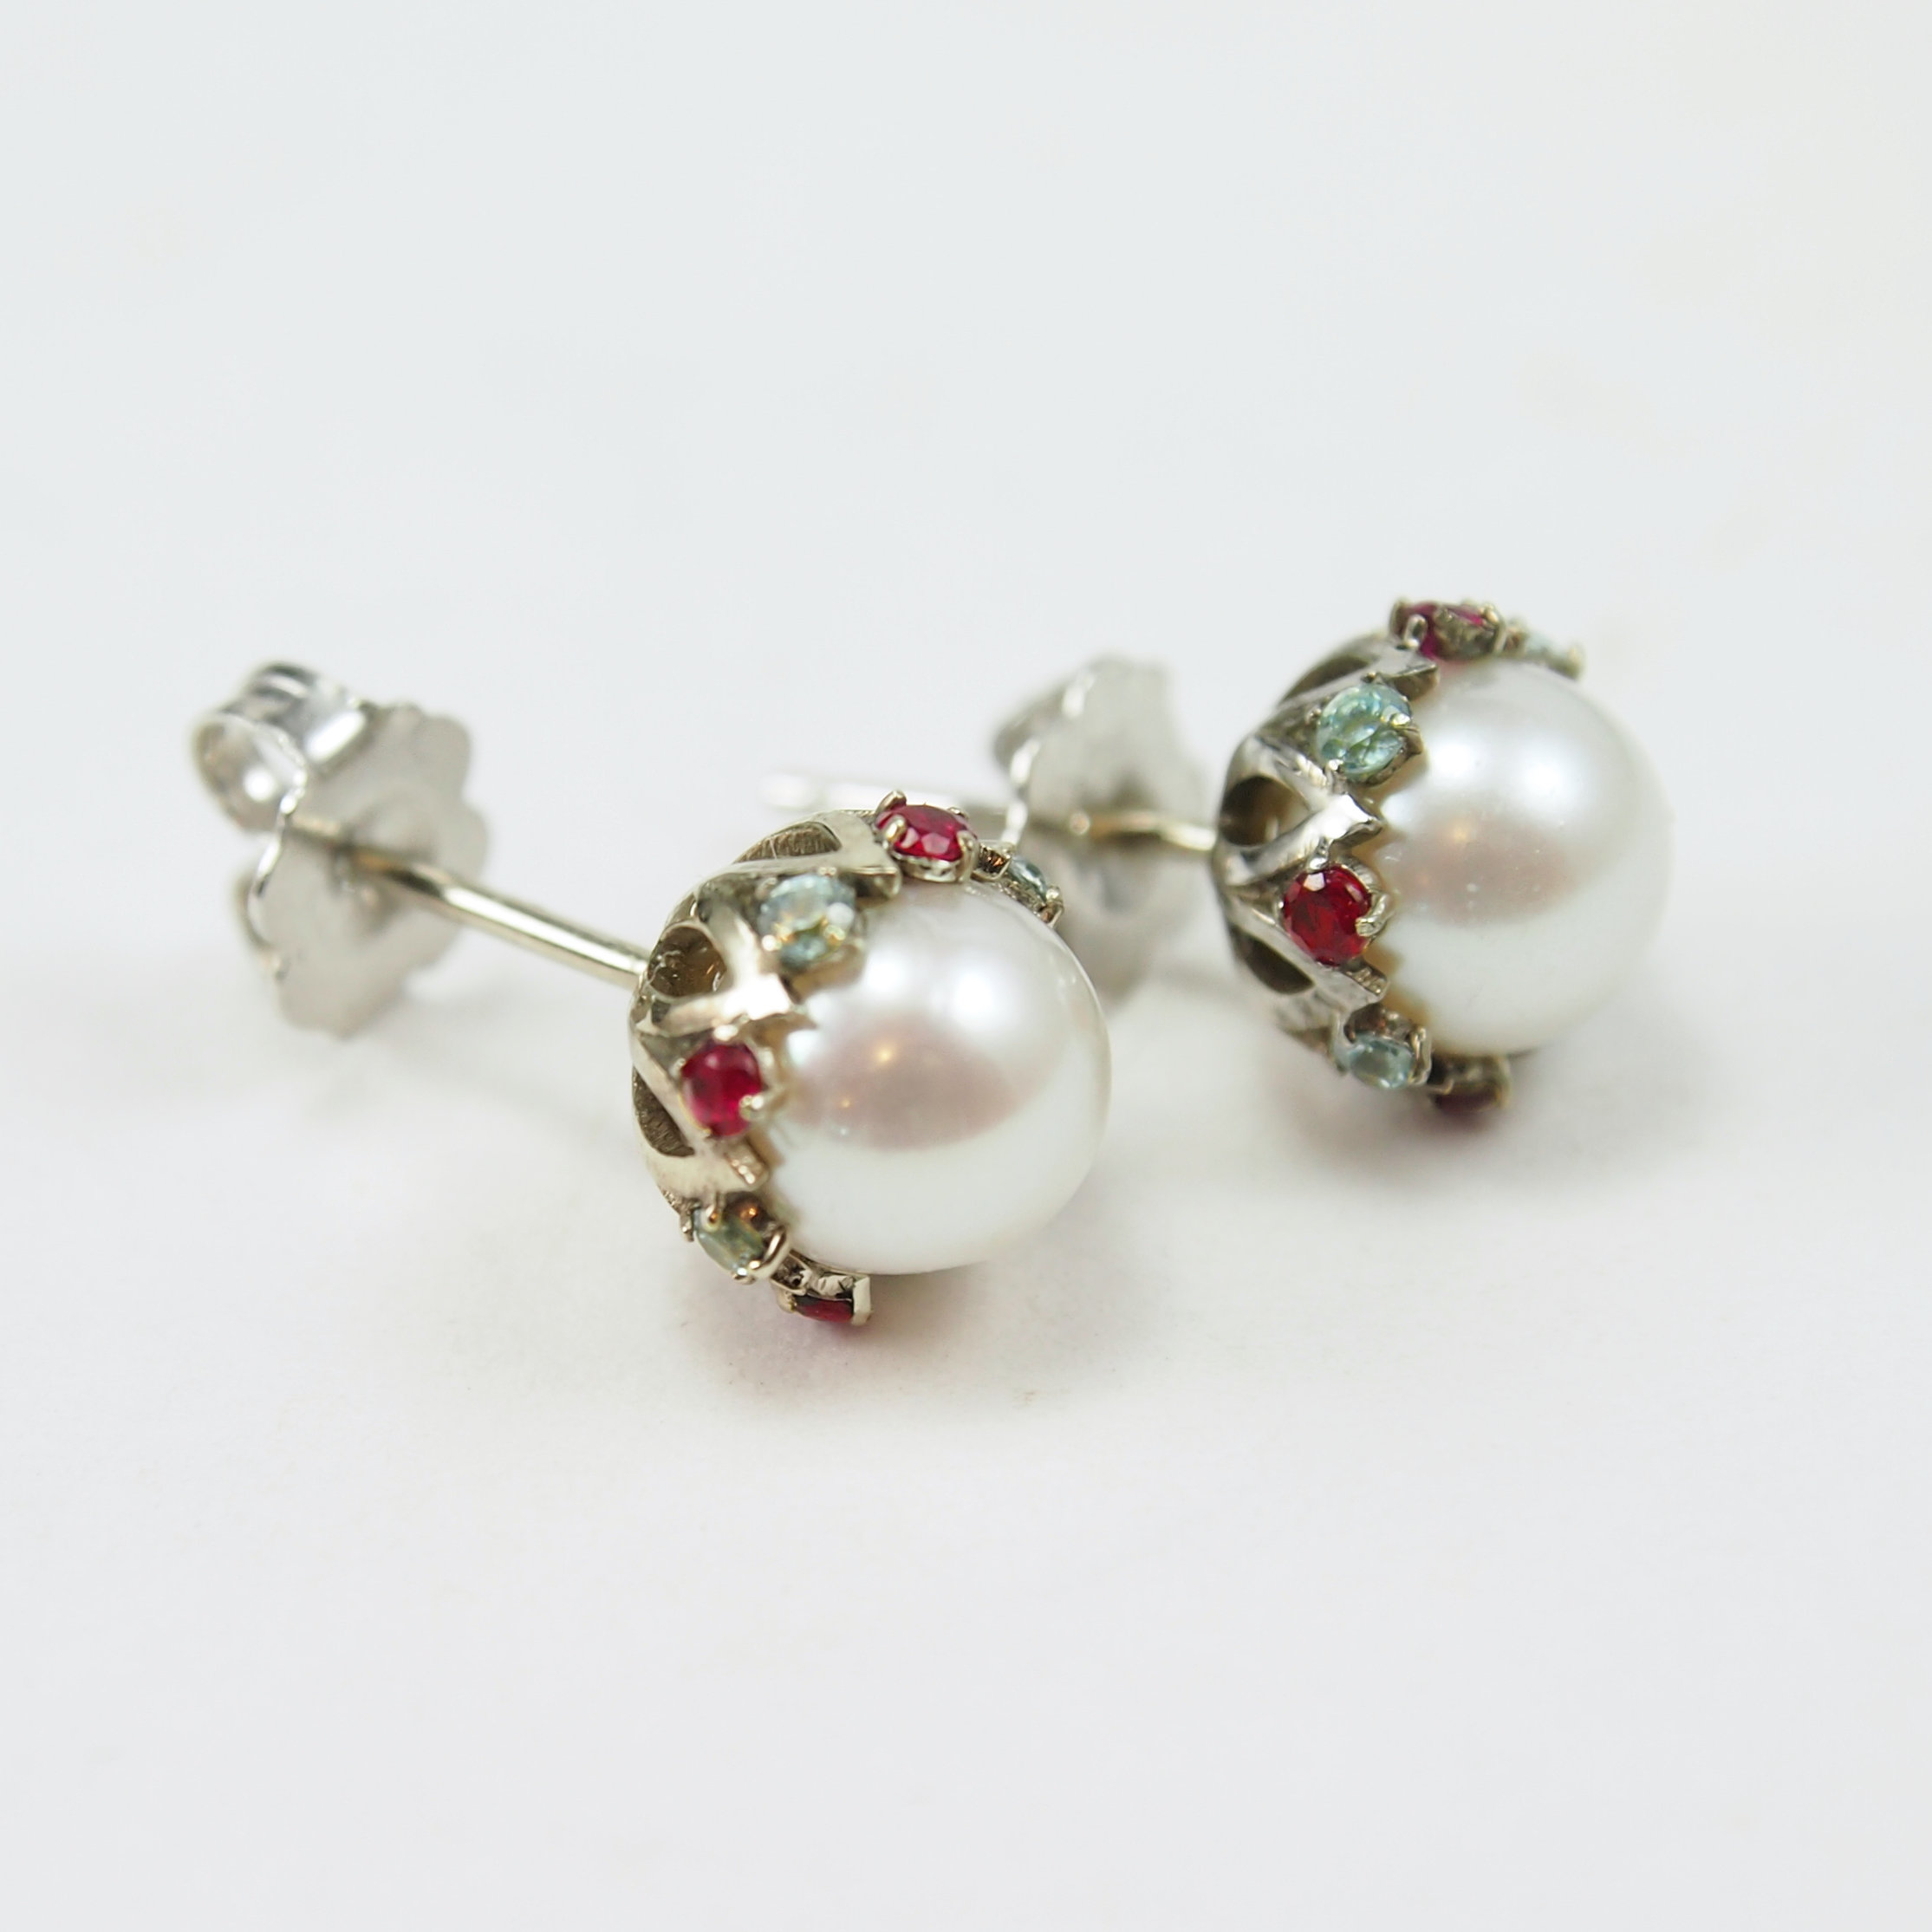 Pearl earrings for Mother's Day